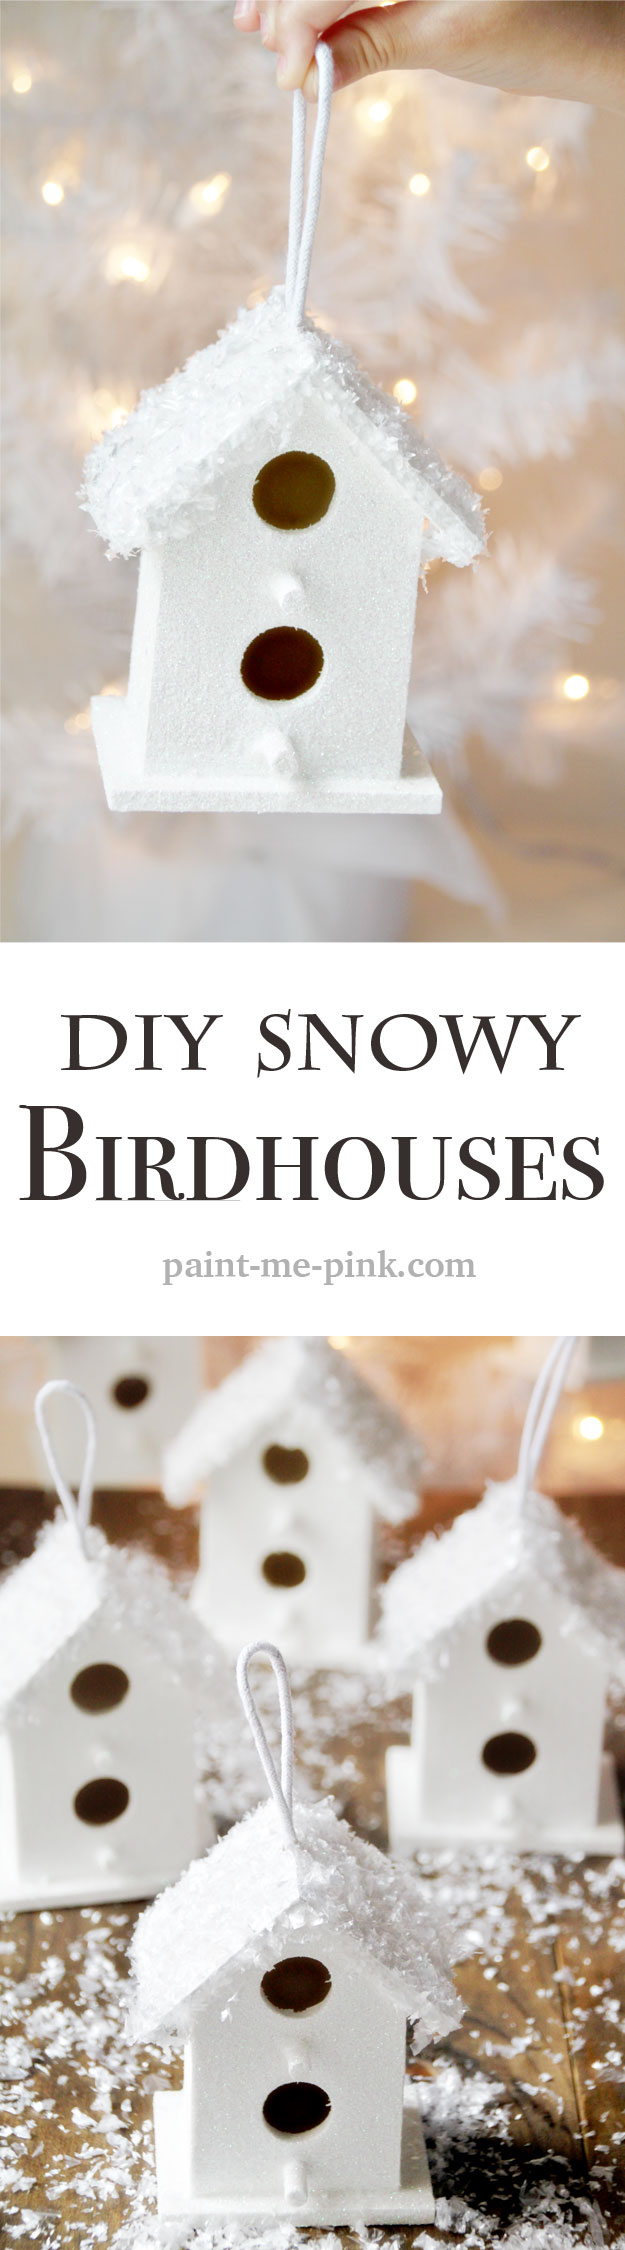 snowy-birdhouse-pin